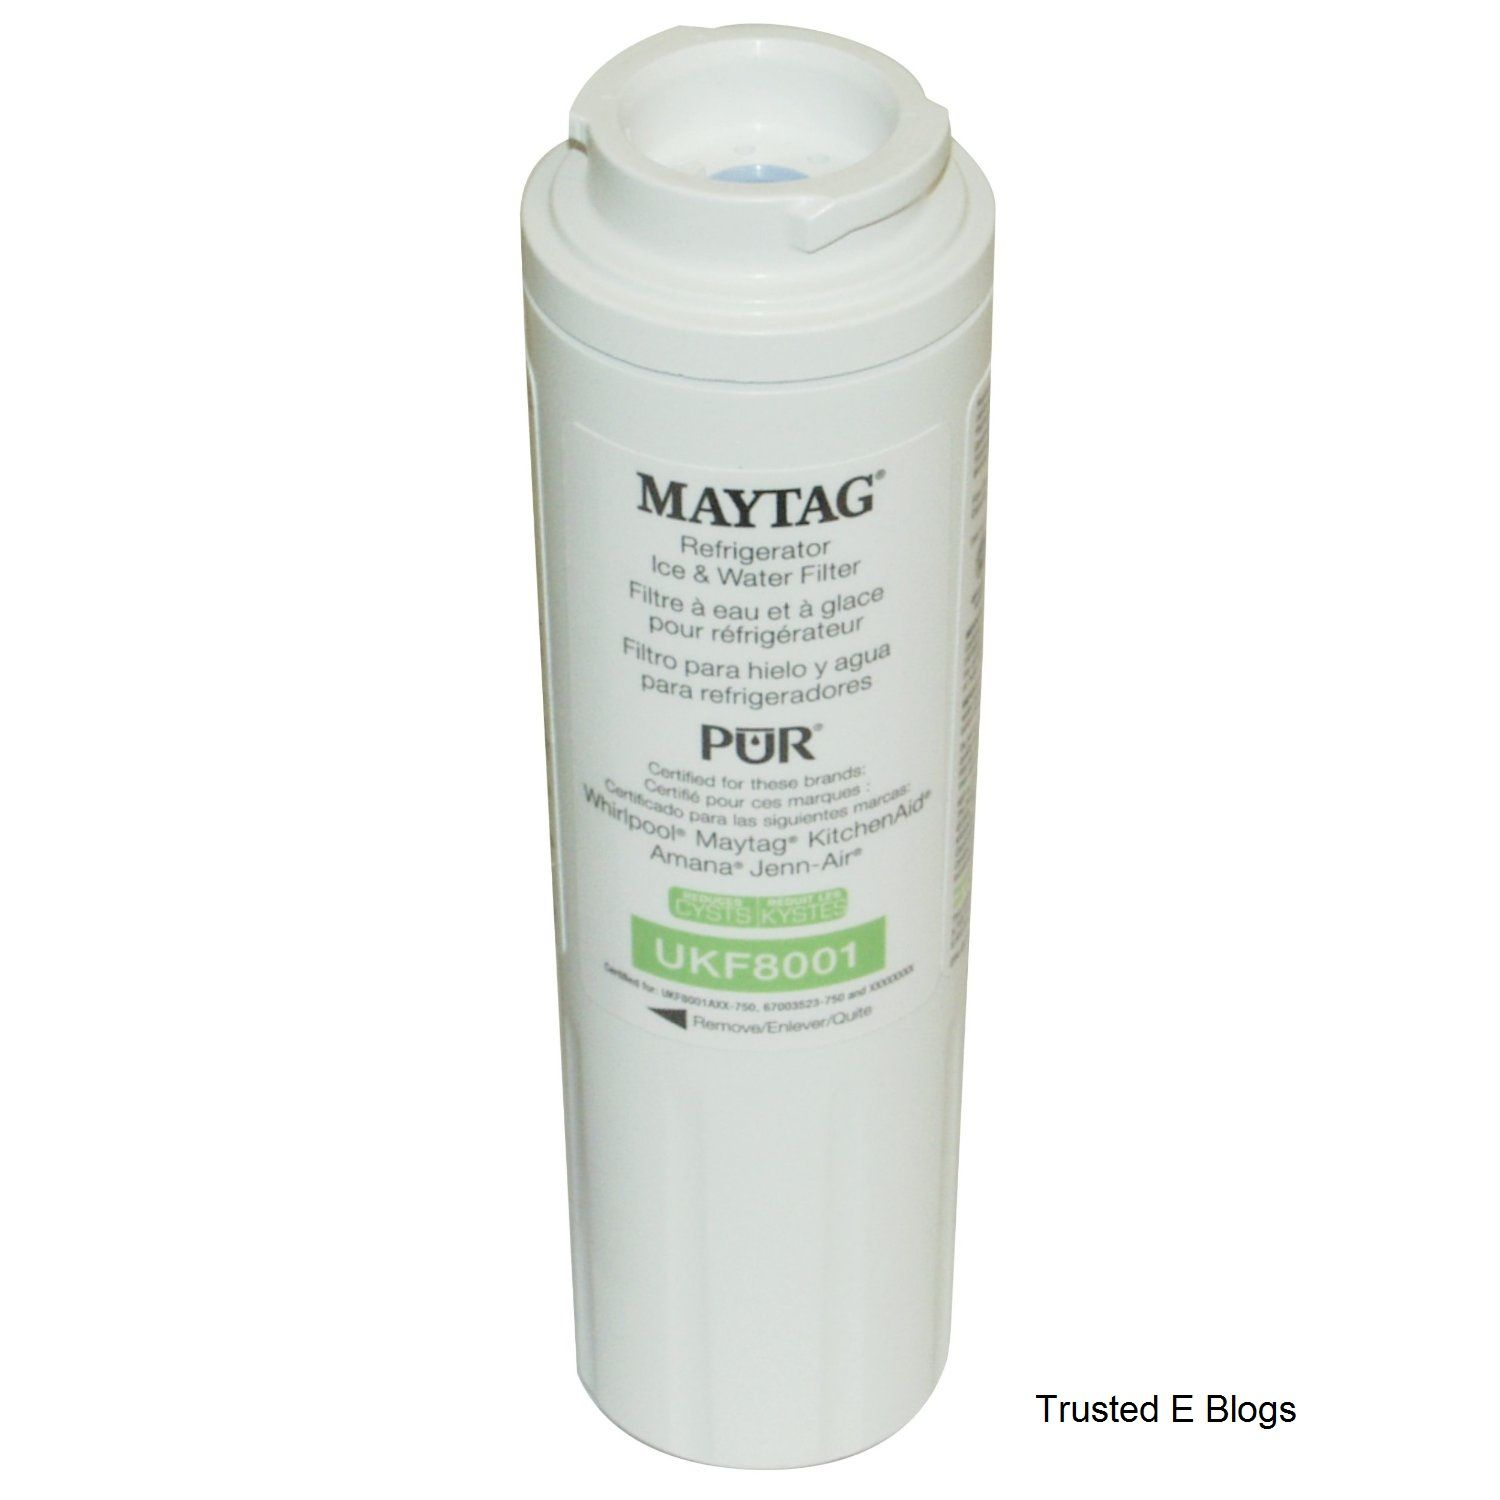 Maytag ukf pur refrigerator water filter very useful plumbing